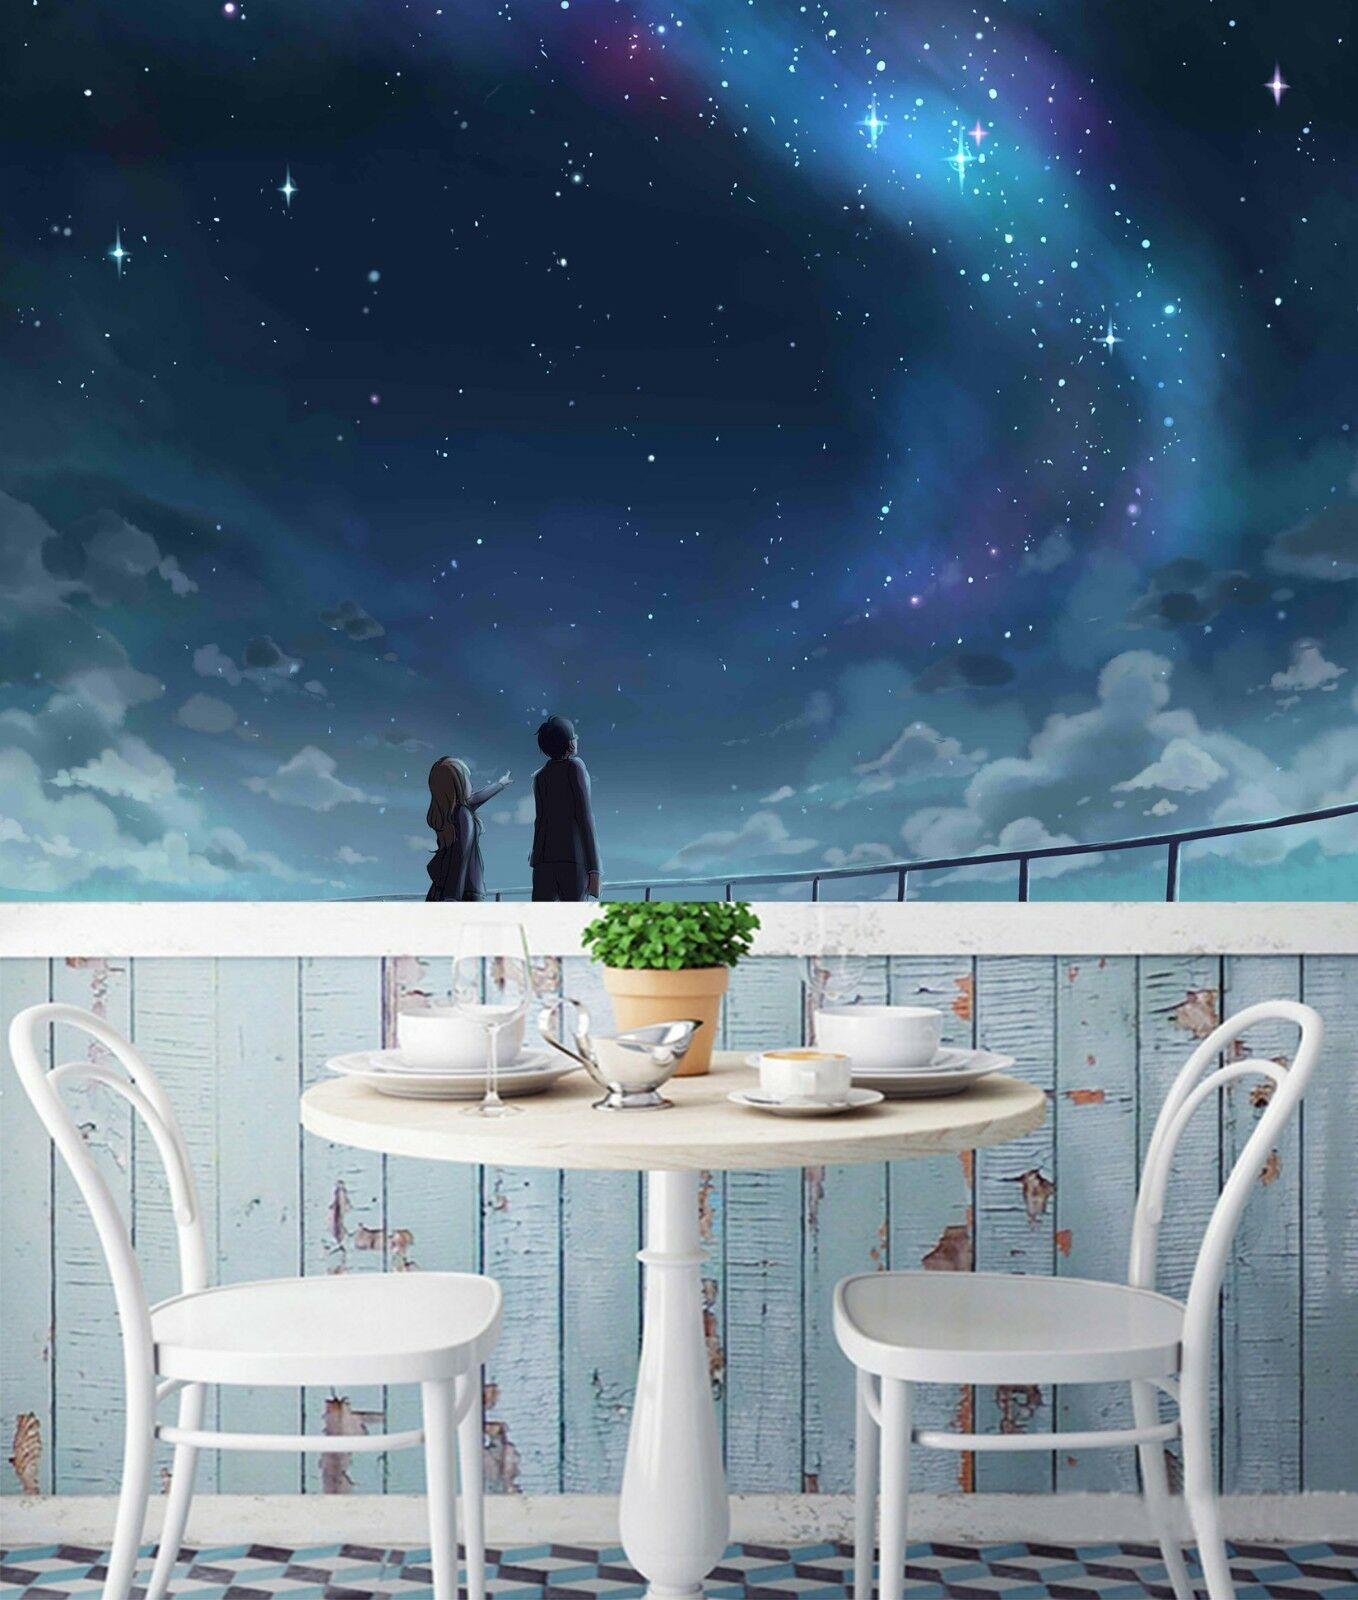 3D Starry Sky 7092 Wall Paper Print Wall Decal Deco Indoor Wall Murals US Summer